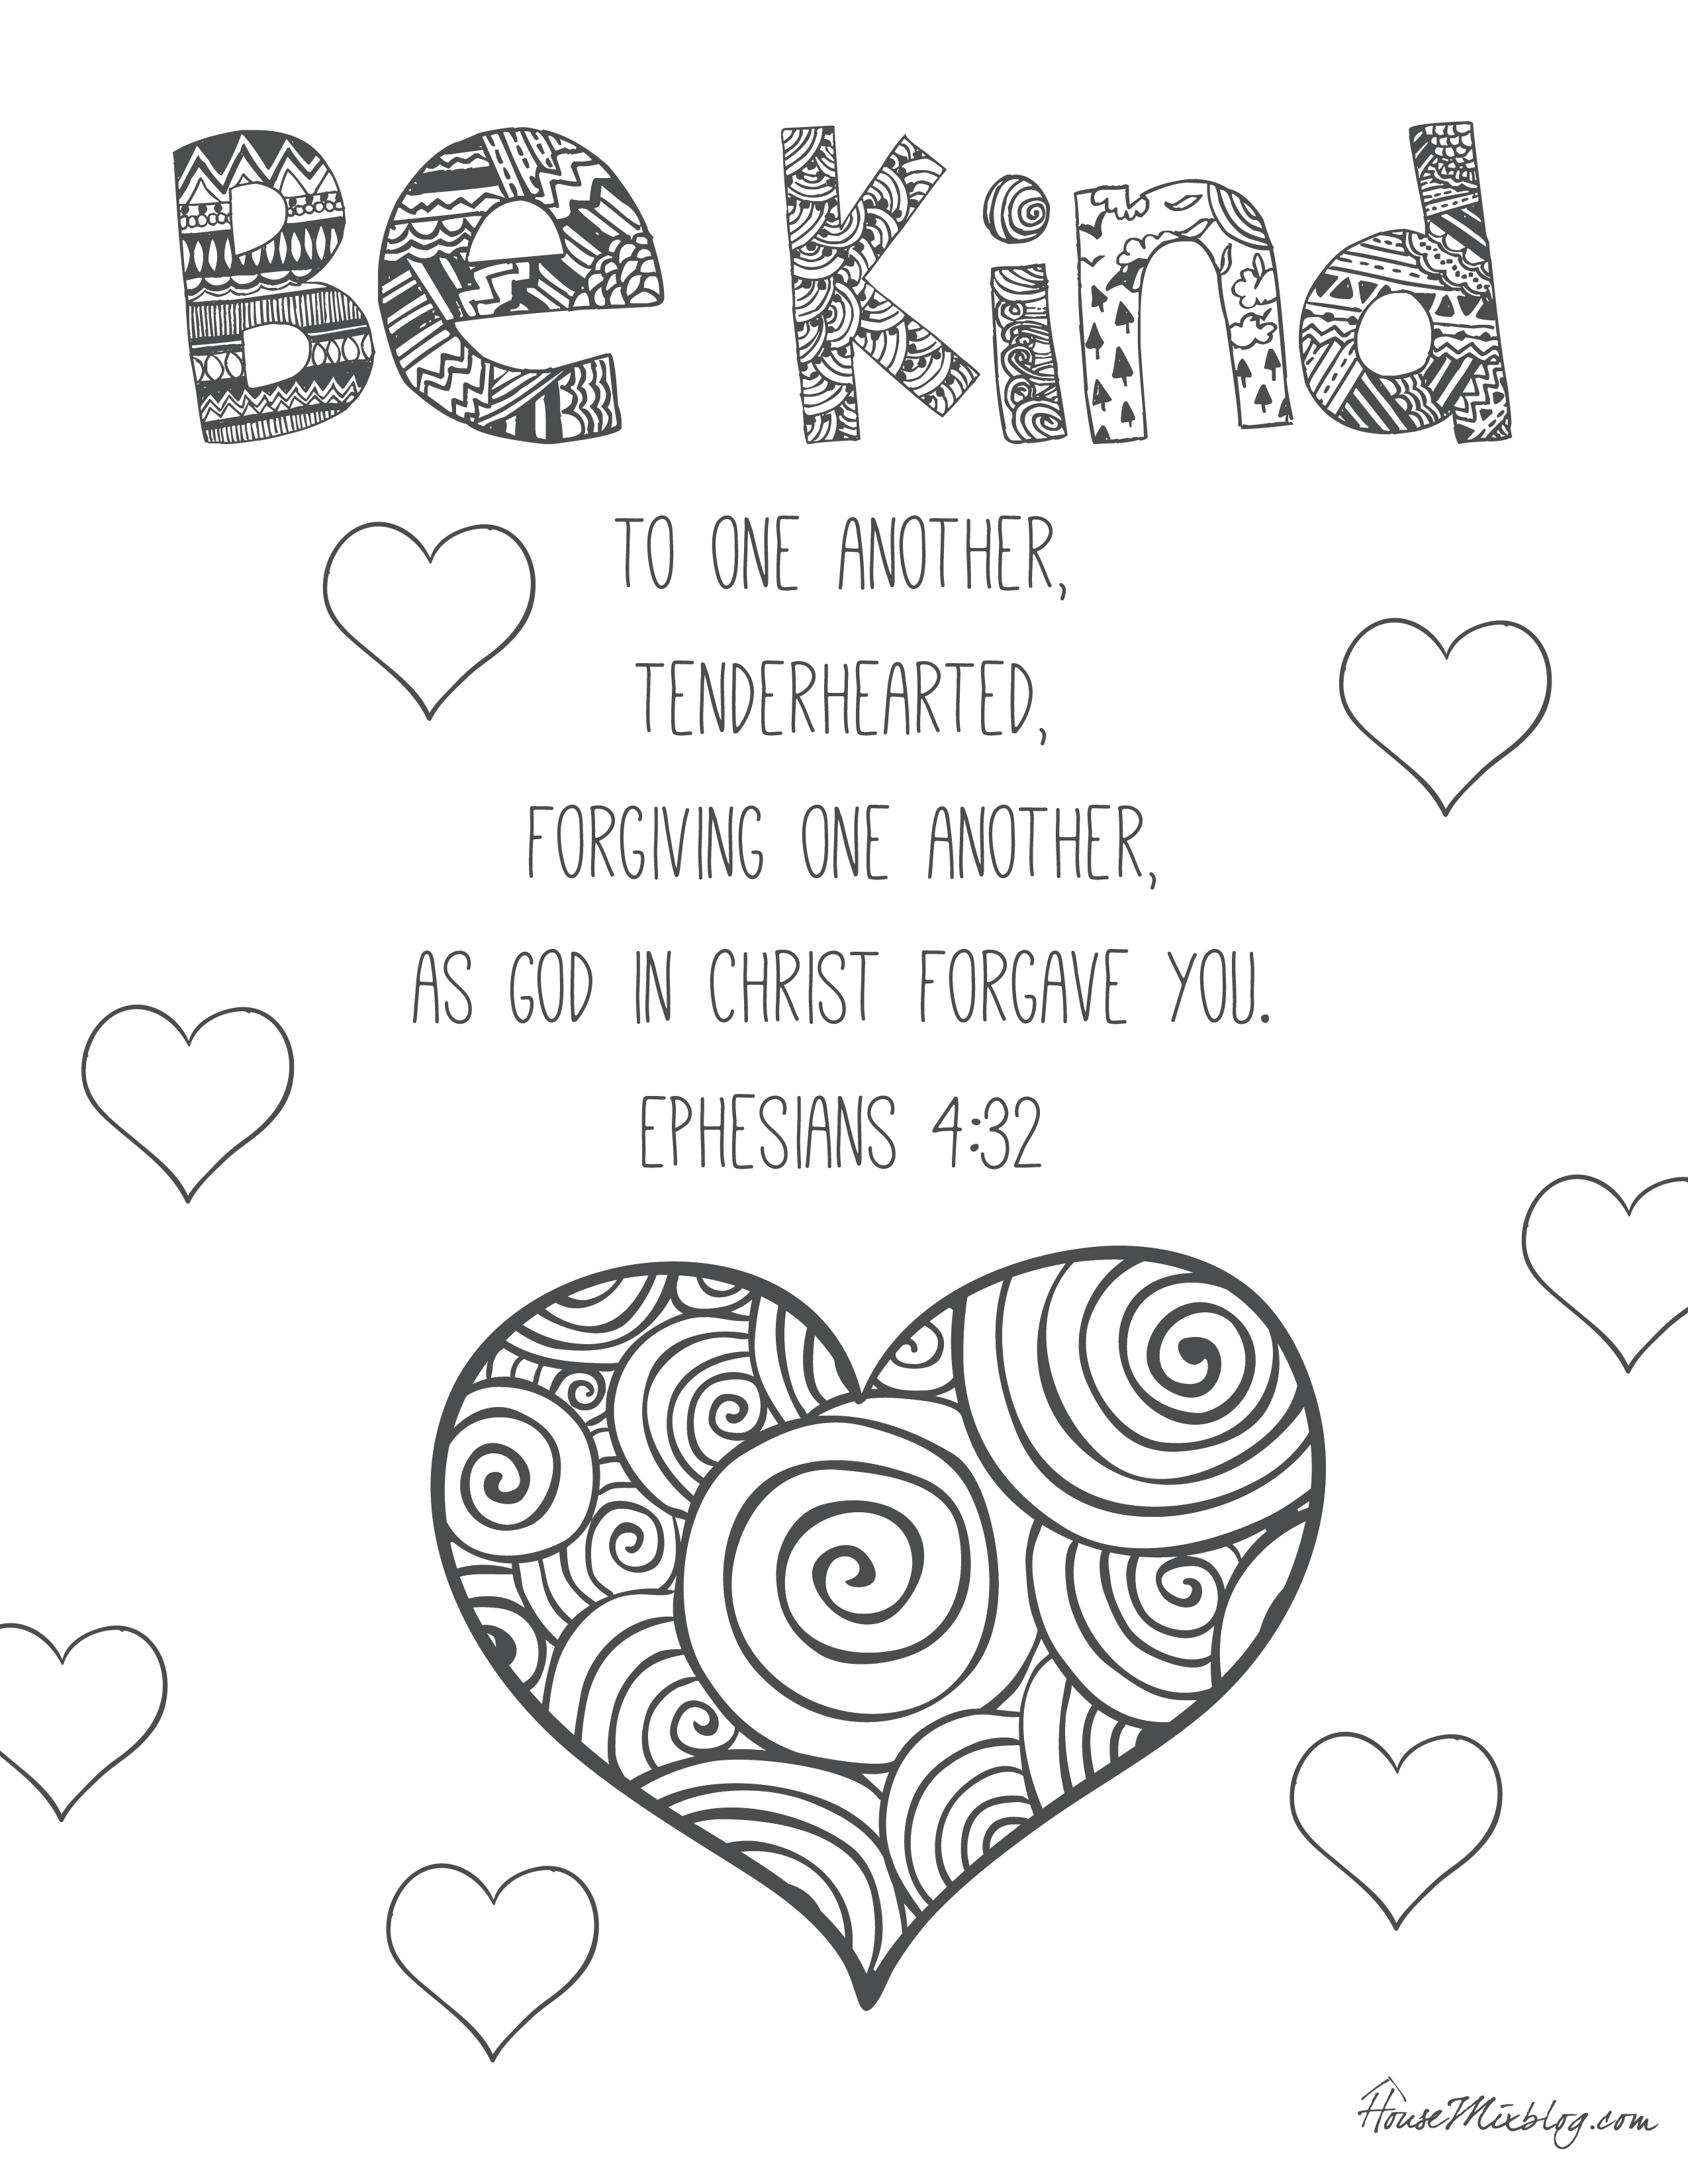 kindness bible coloring pages kindness kindred spirits bible verse art bible art coloring kindness bible pages